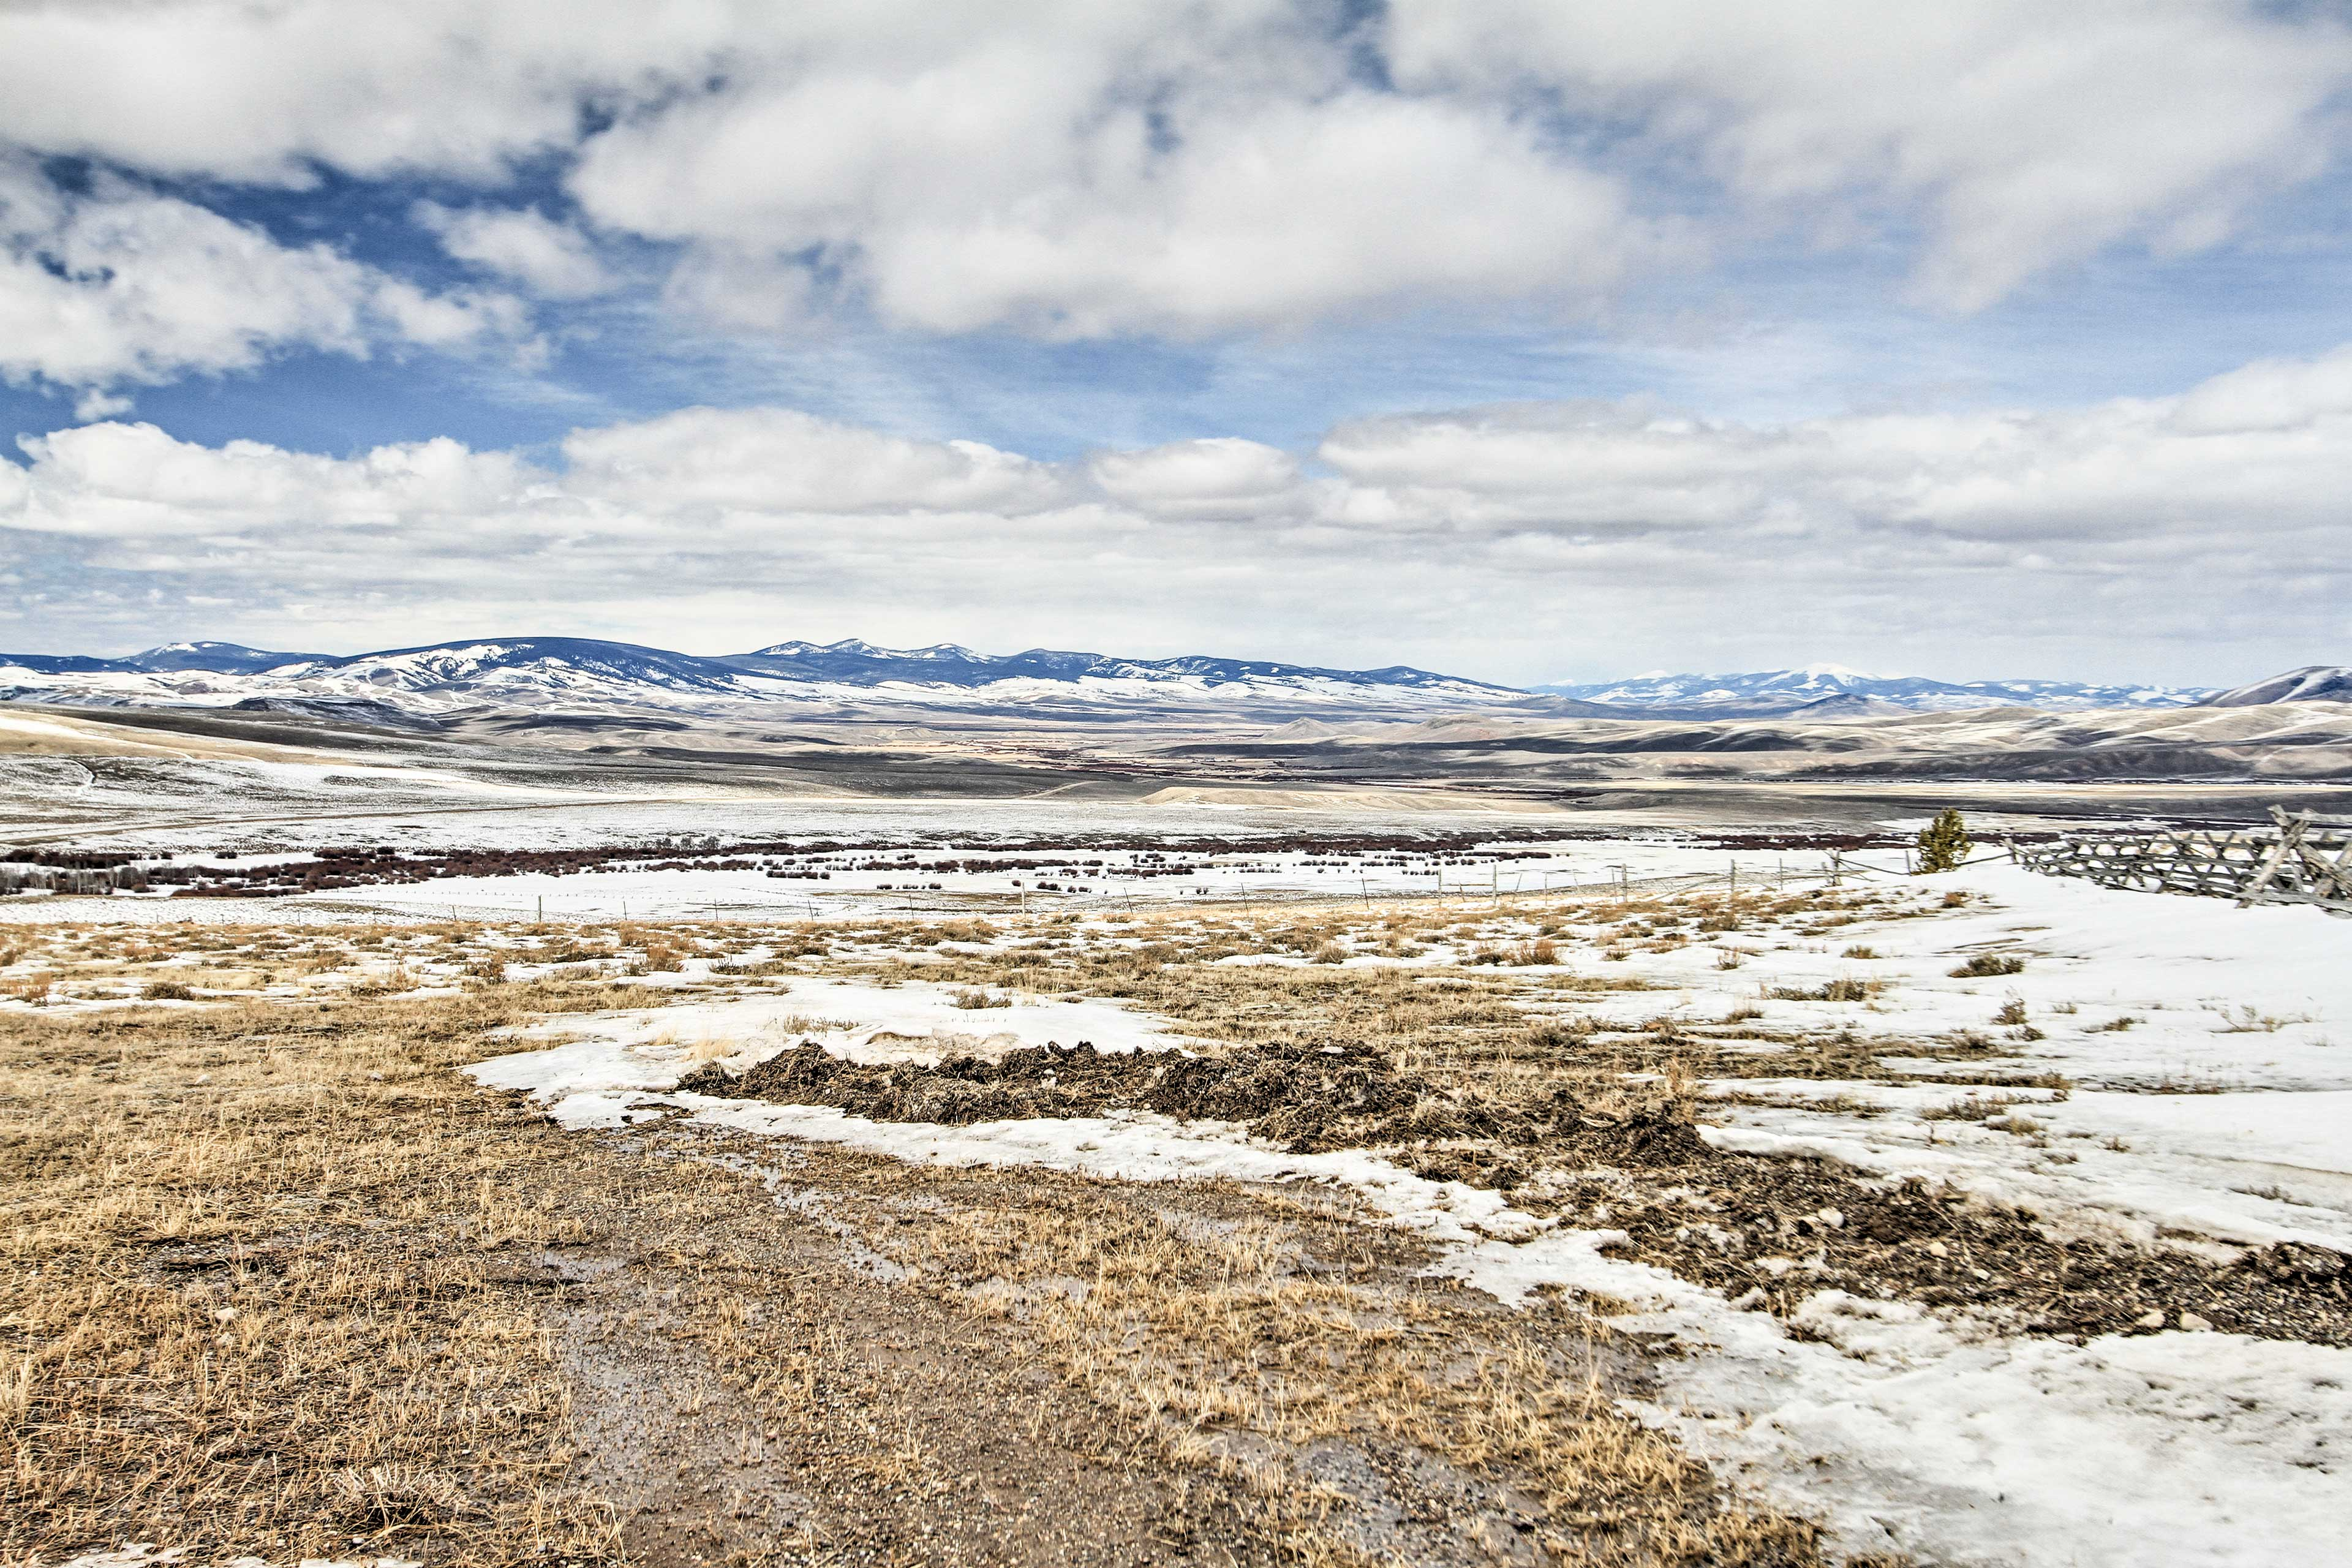 Lemhi Valley is home to some of the best scenic vistas.